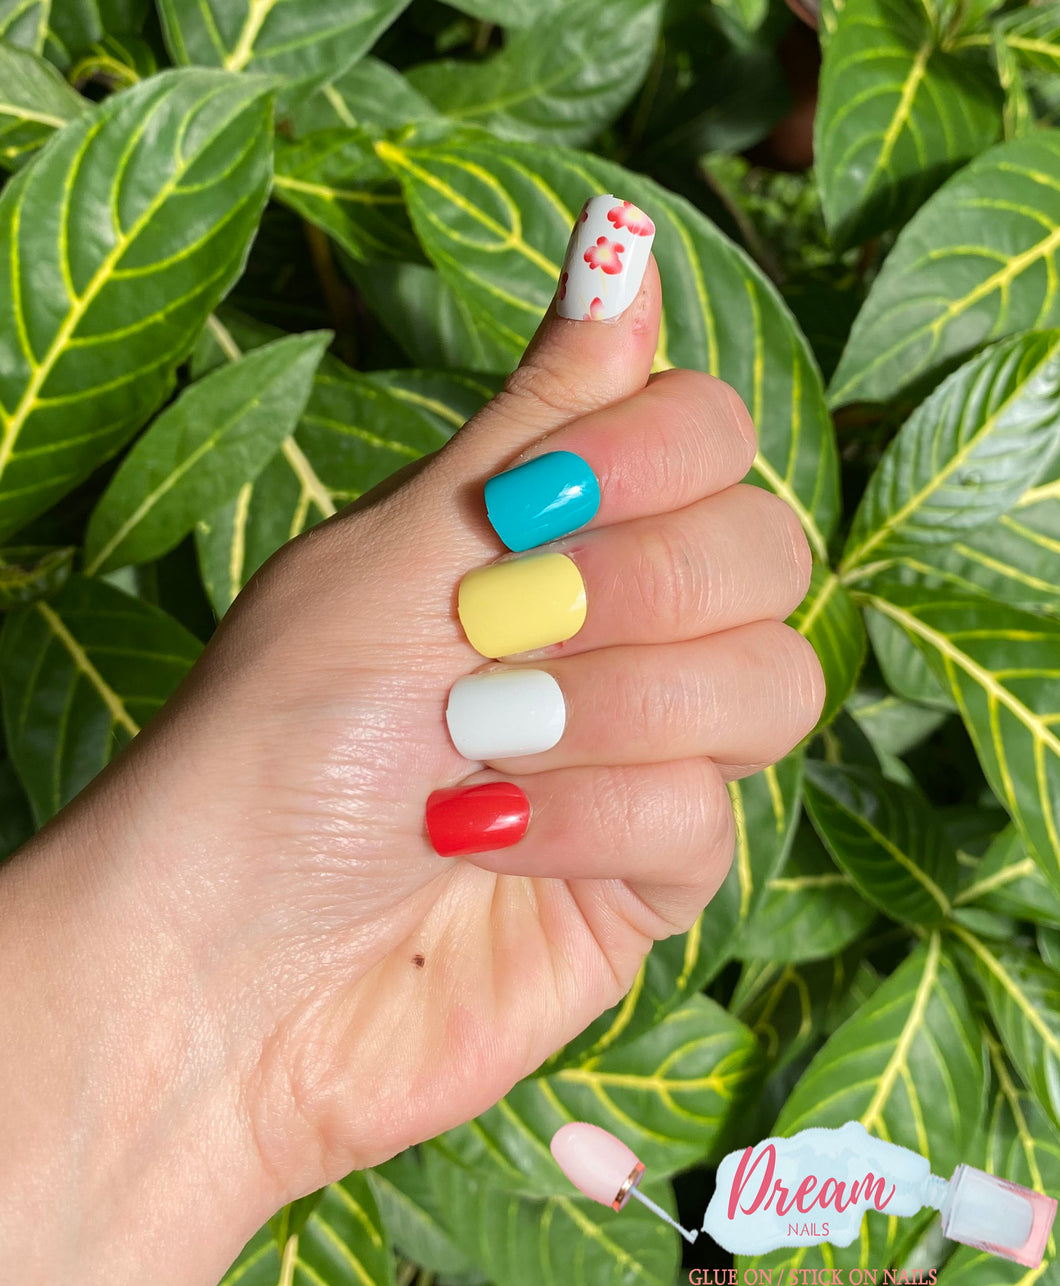 DREAM NAILS | LOVELY PRESS-ON NAILS